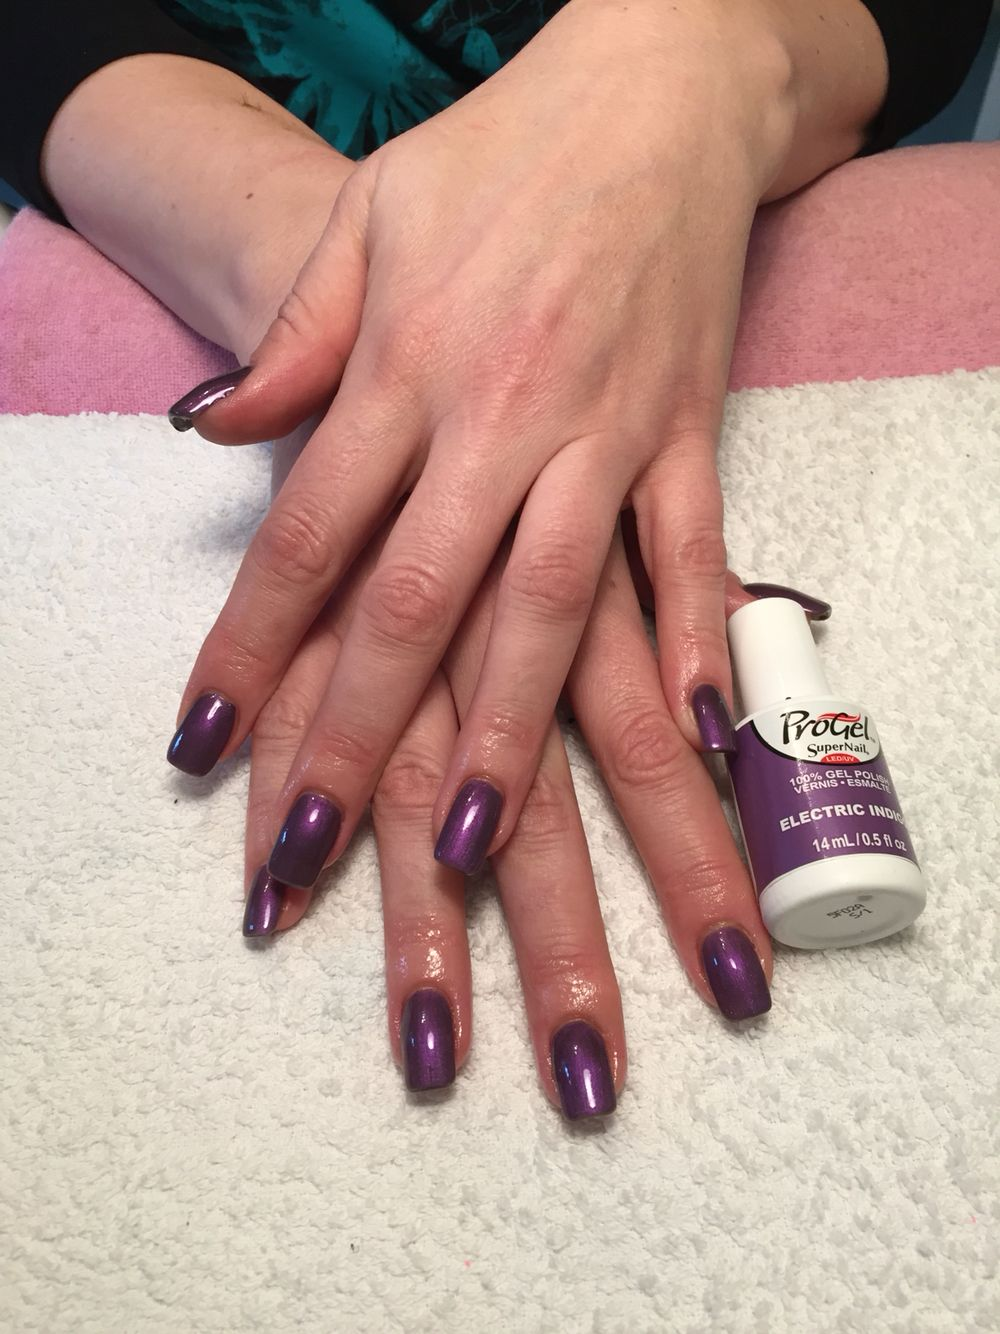 Supernail Progel Over Acrylic Nail Extensions X